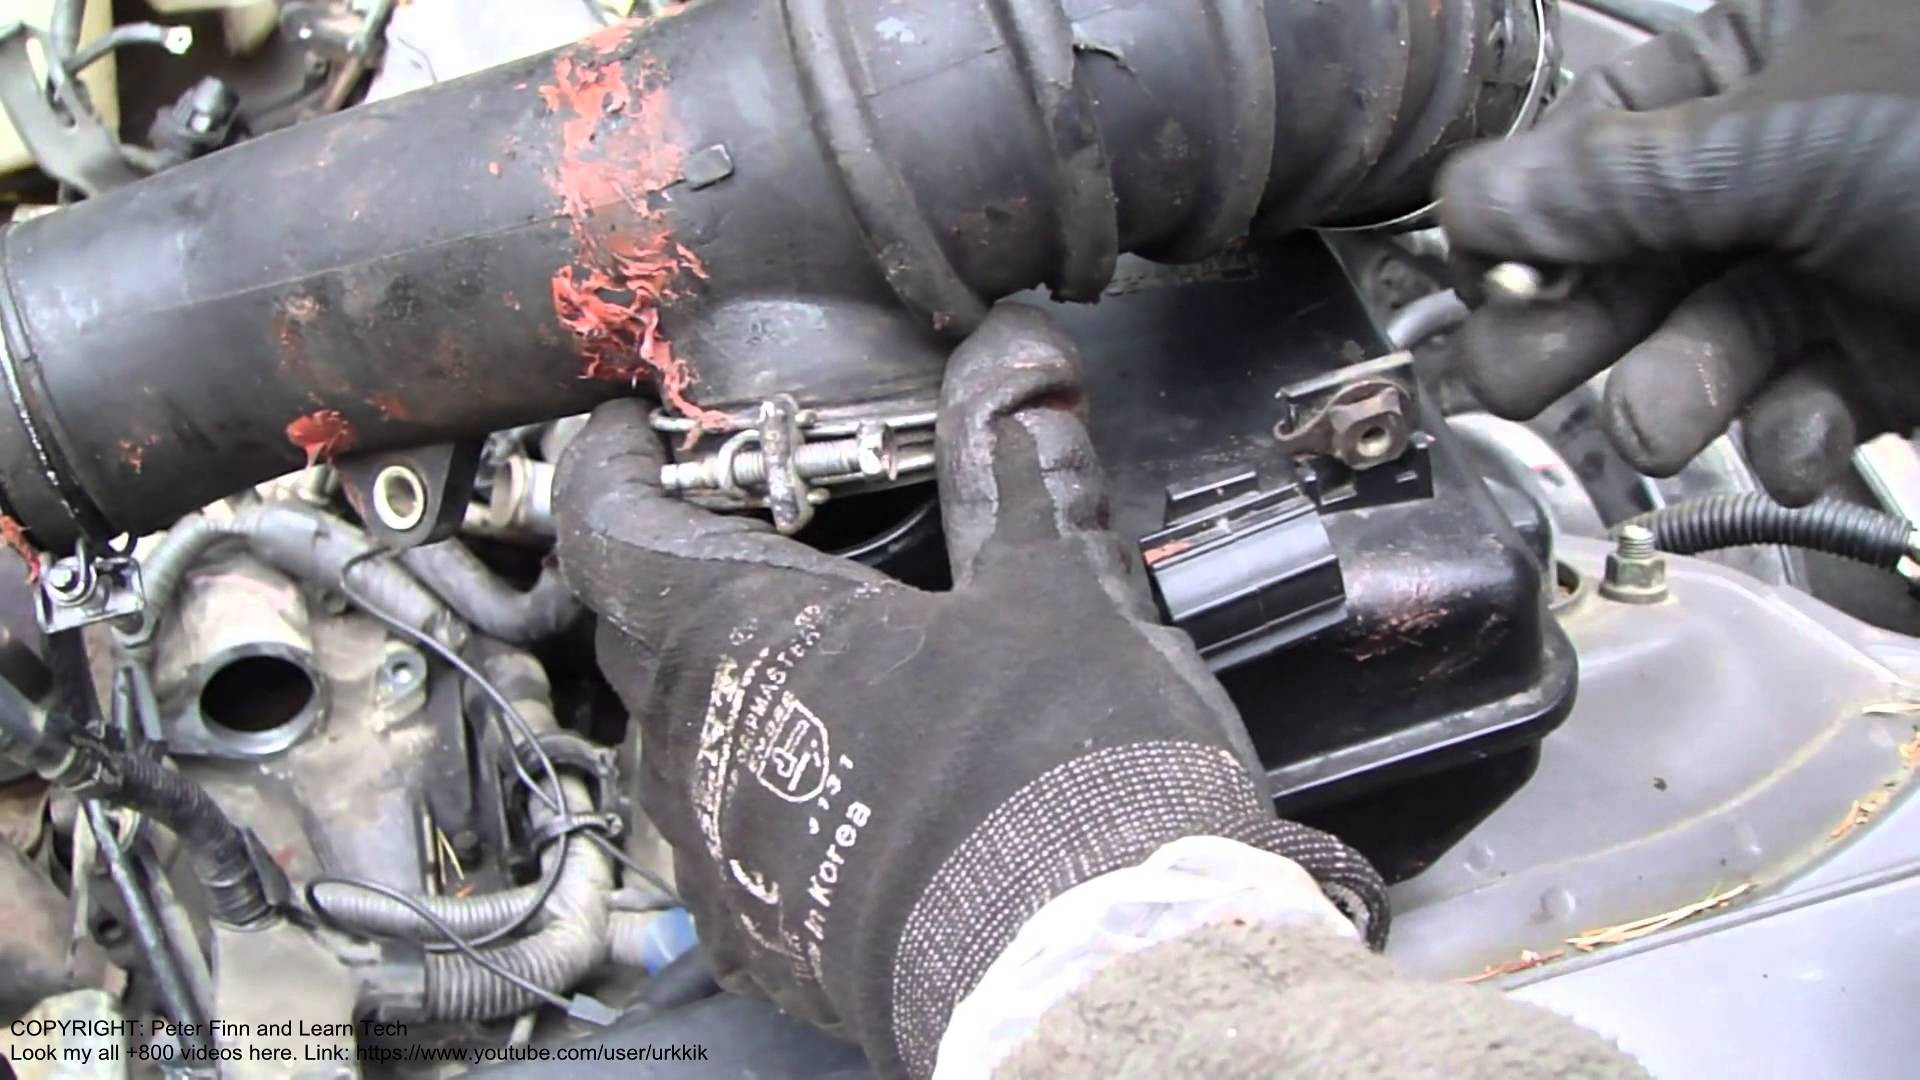 1999 Toyota Camry 4 Cylinder Engine Diagram How To Disassemble 2 Intake Hose Liter Years